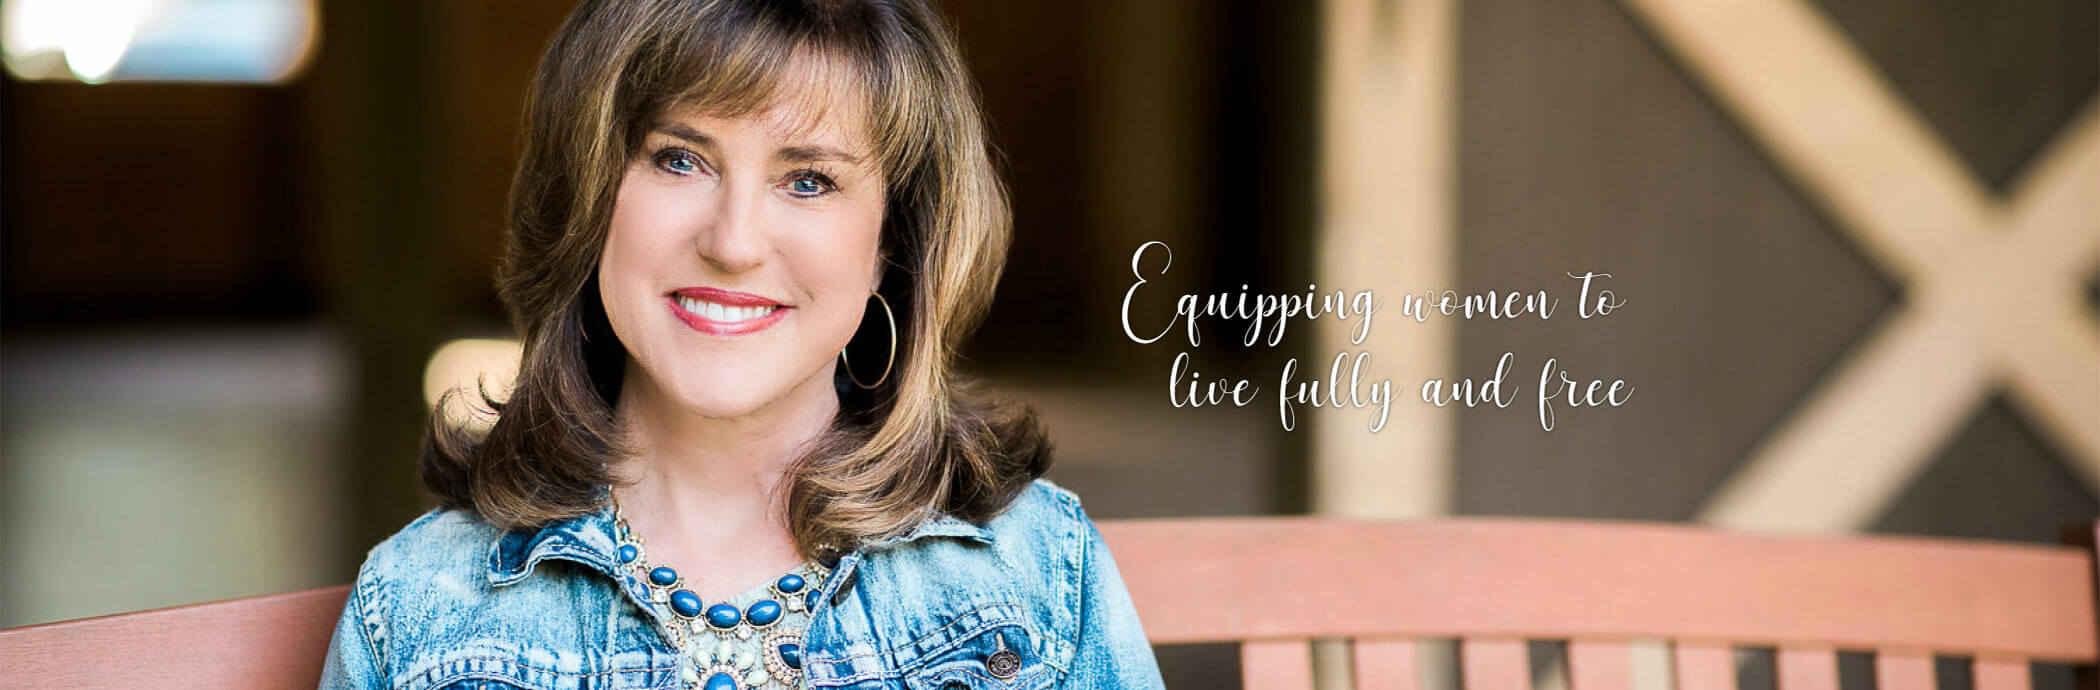 Sharon Jaynes | Equipping Women to Live Fully and Free